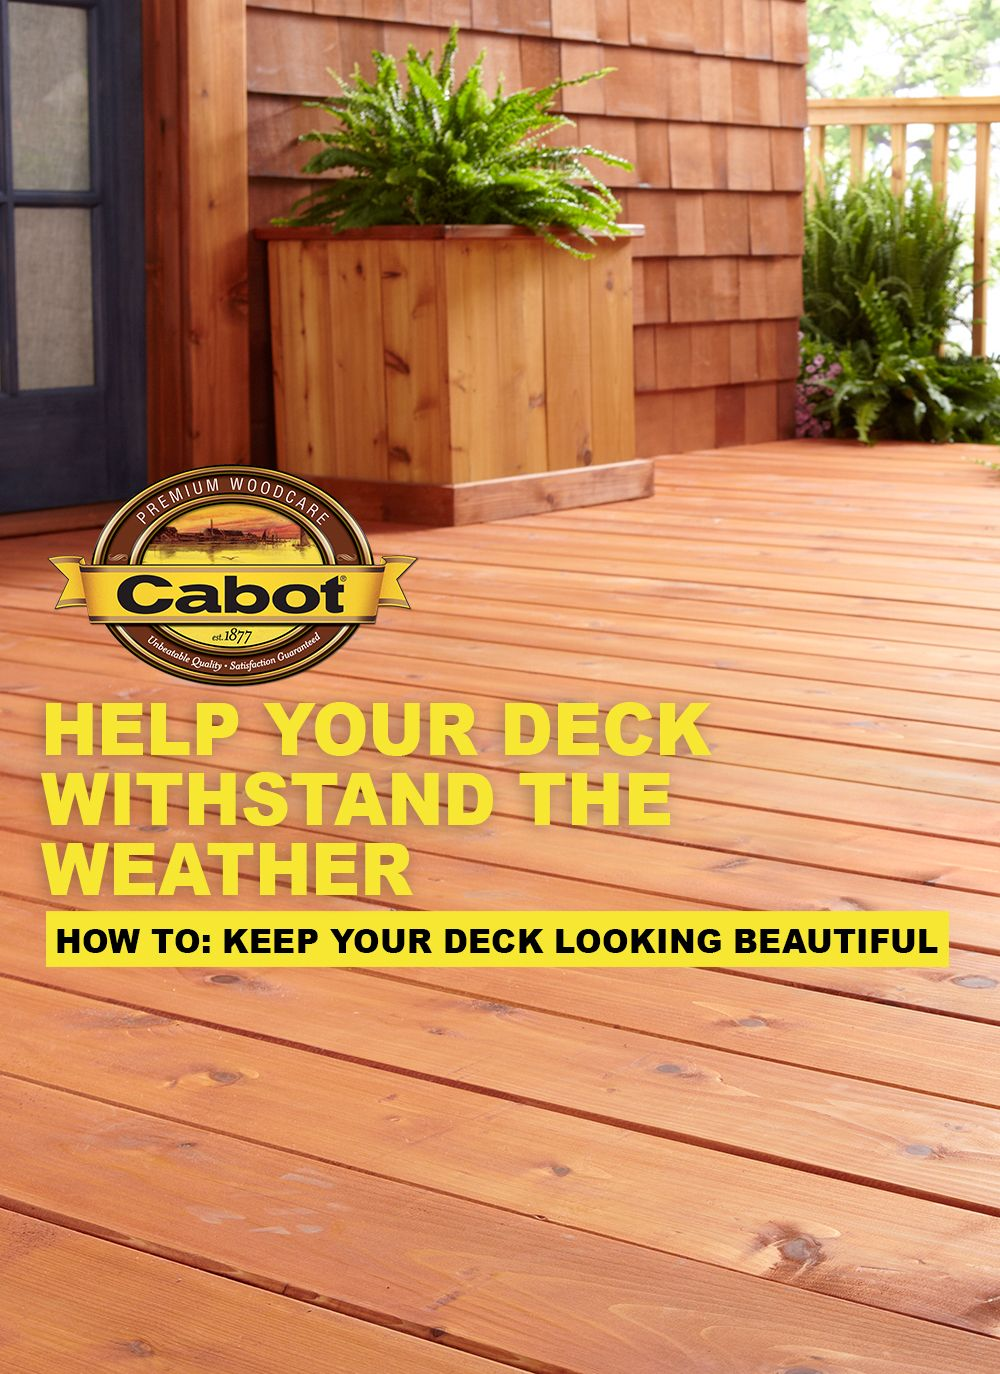 How To Maintain Your Exterior Wood Wood Deck Cabot Exterior Wood Exterior Stain Staining Wood